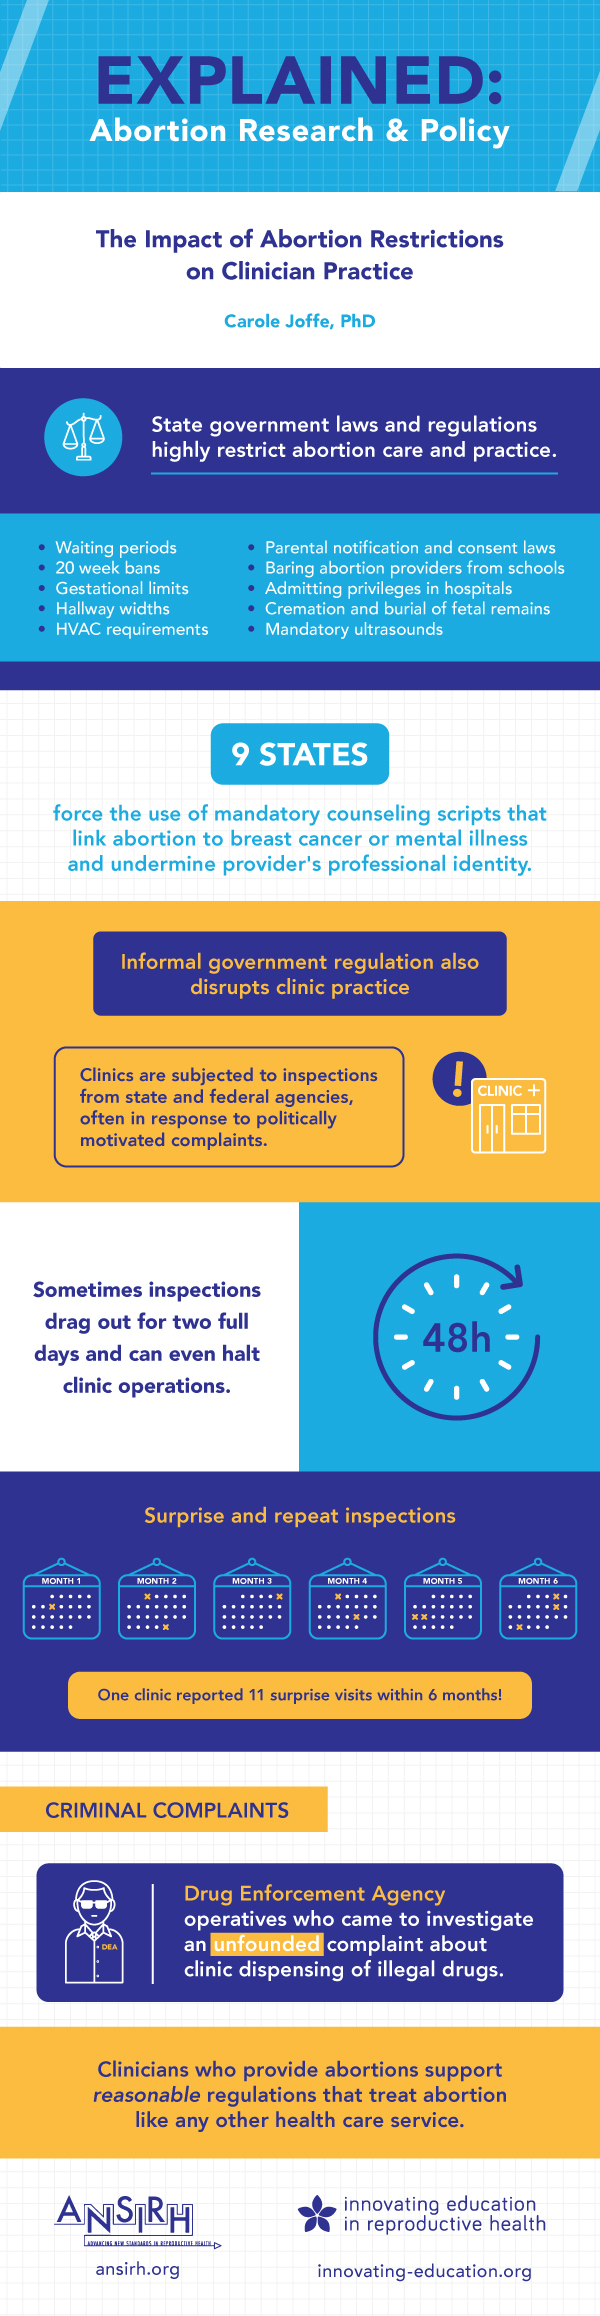 Impact of Restrictions on Clinical Practice Infographic